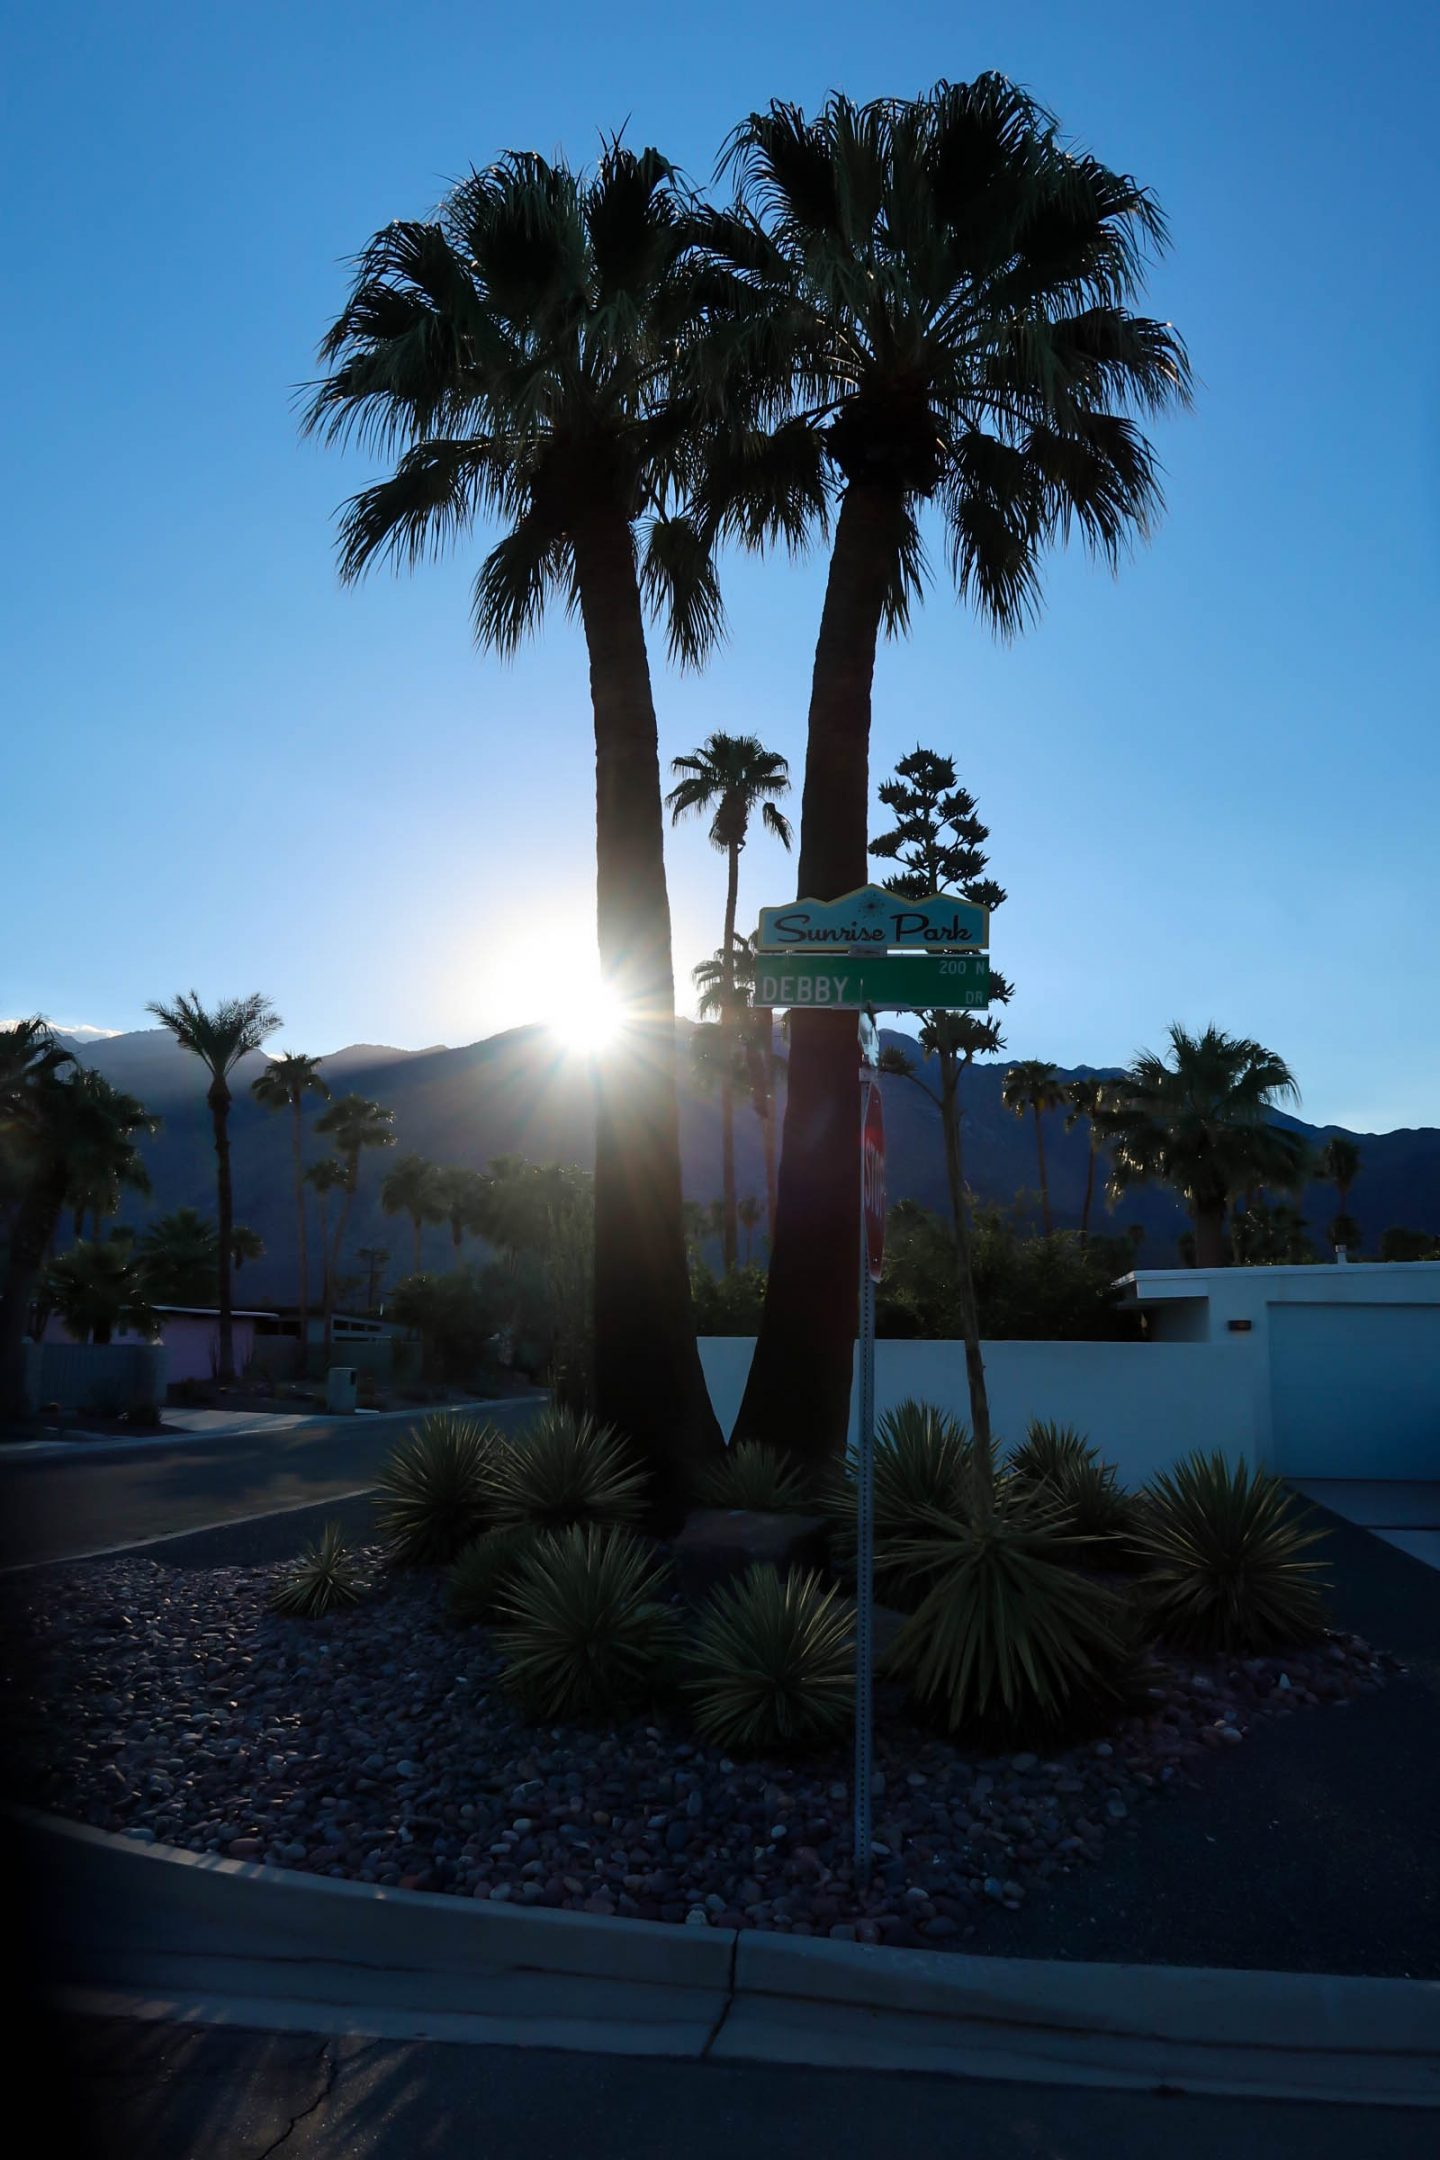 Sunrise Park - Palm Springs - Lauren Schwaiger Travel Blog